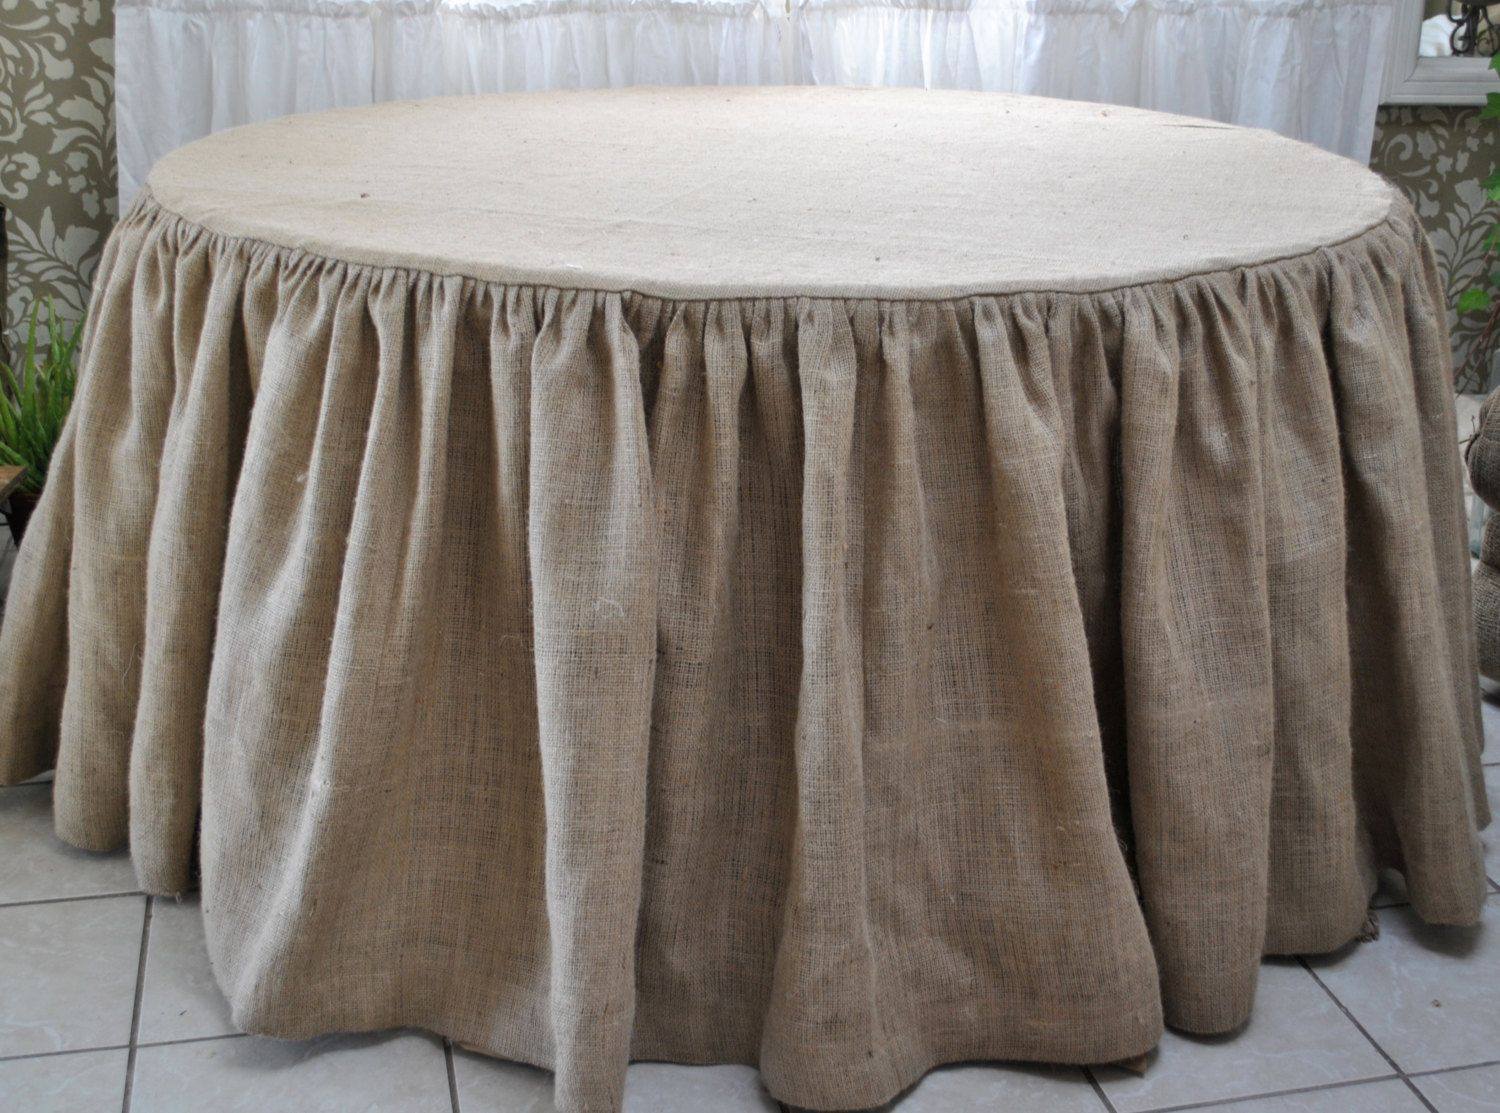 Burlap Round Tablecloth By Paulaanderika On Etsy With Amazing Best Images